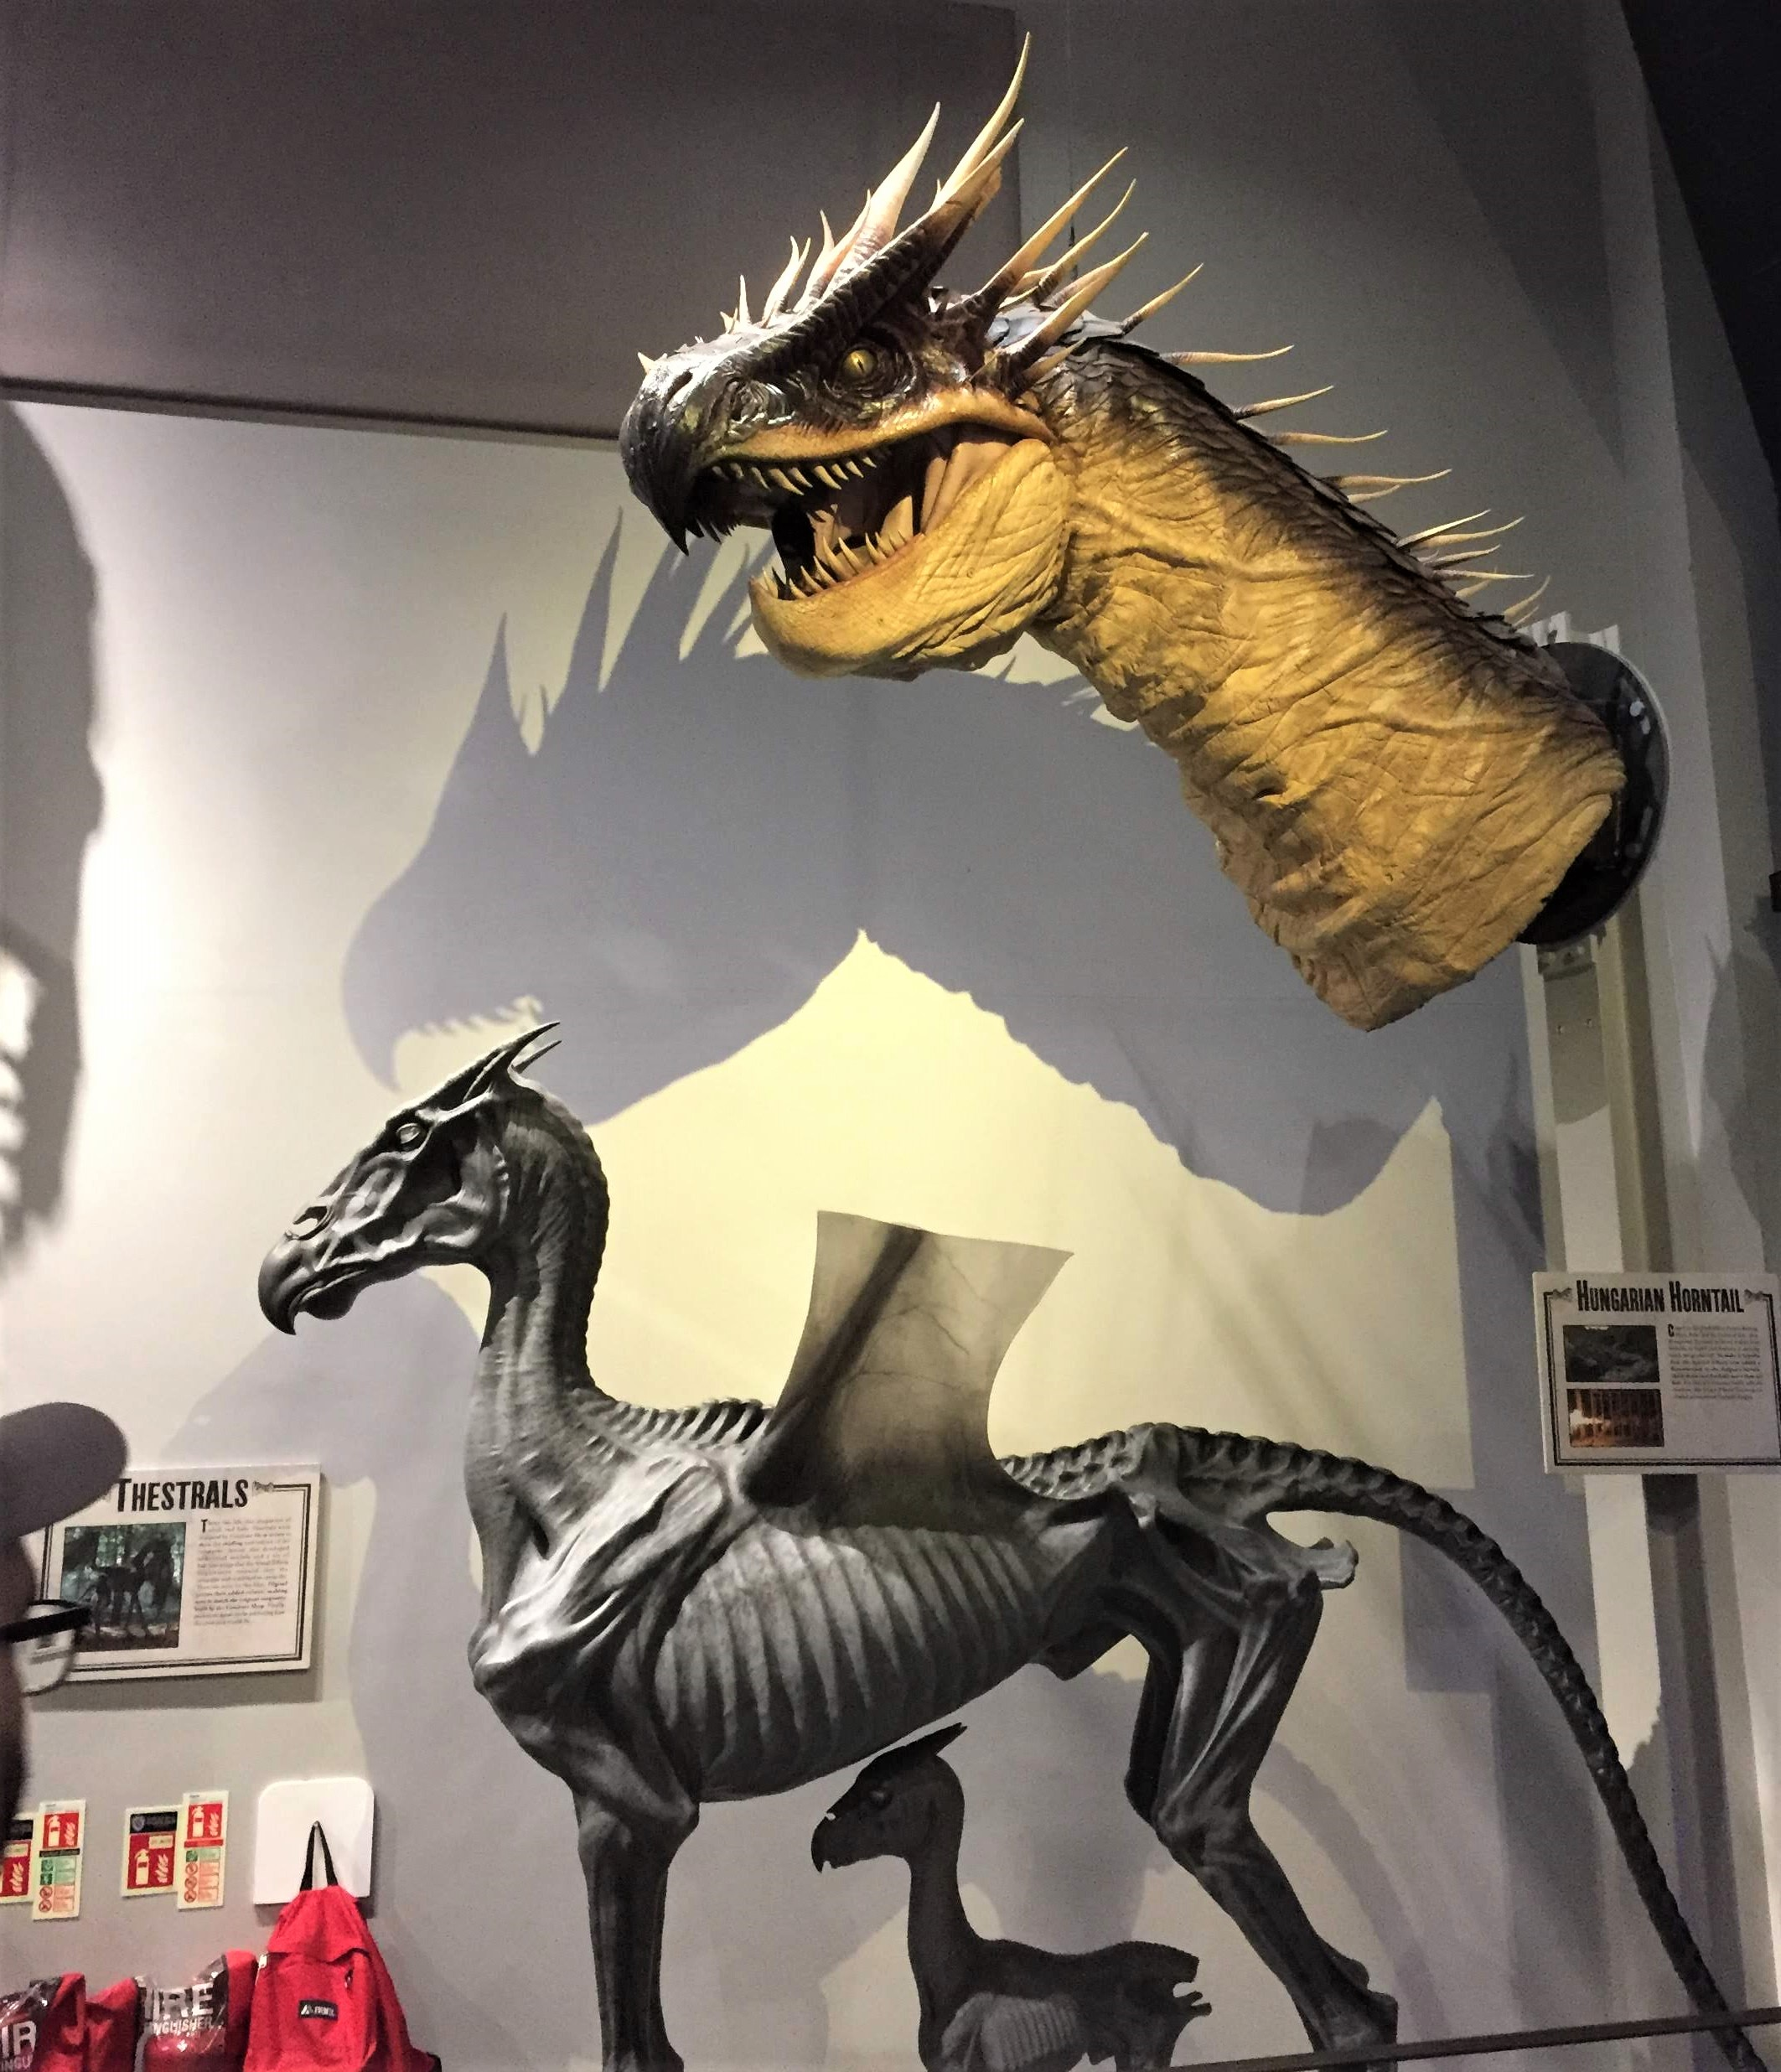 Creature models on display on the Harry Potter Studio Tour in London.